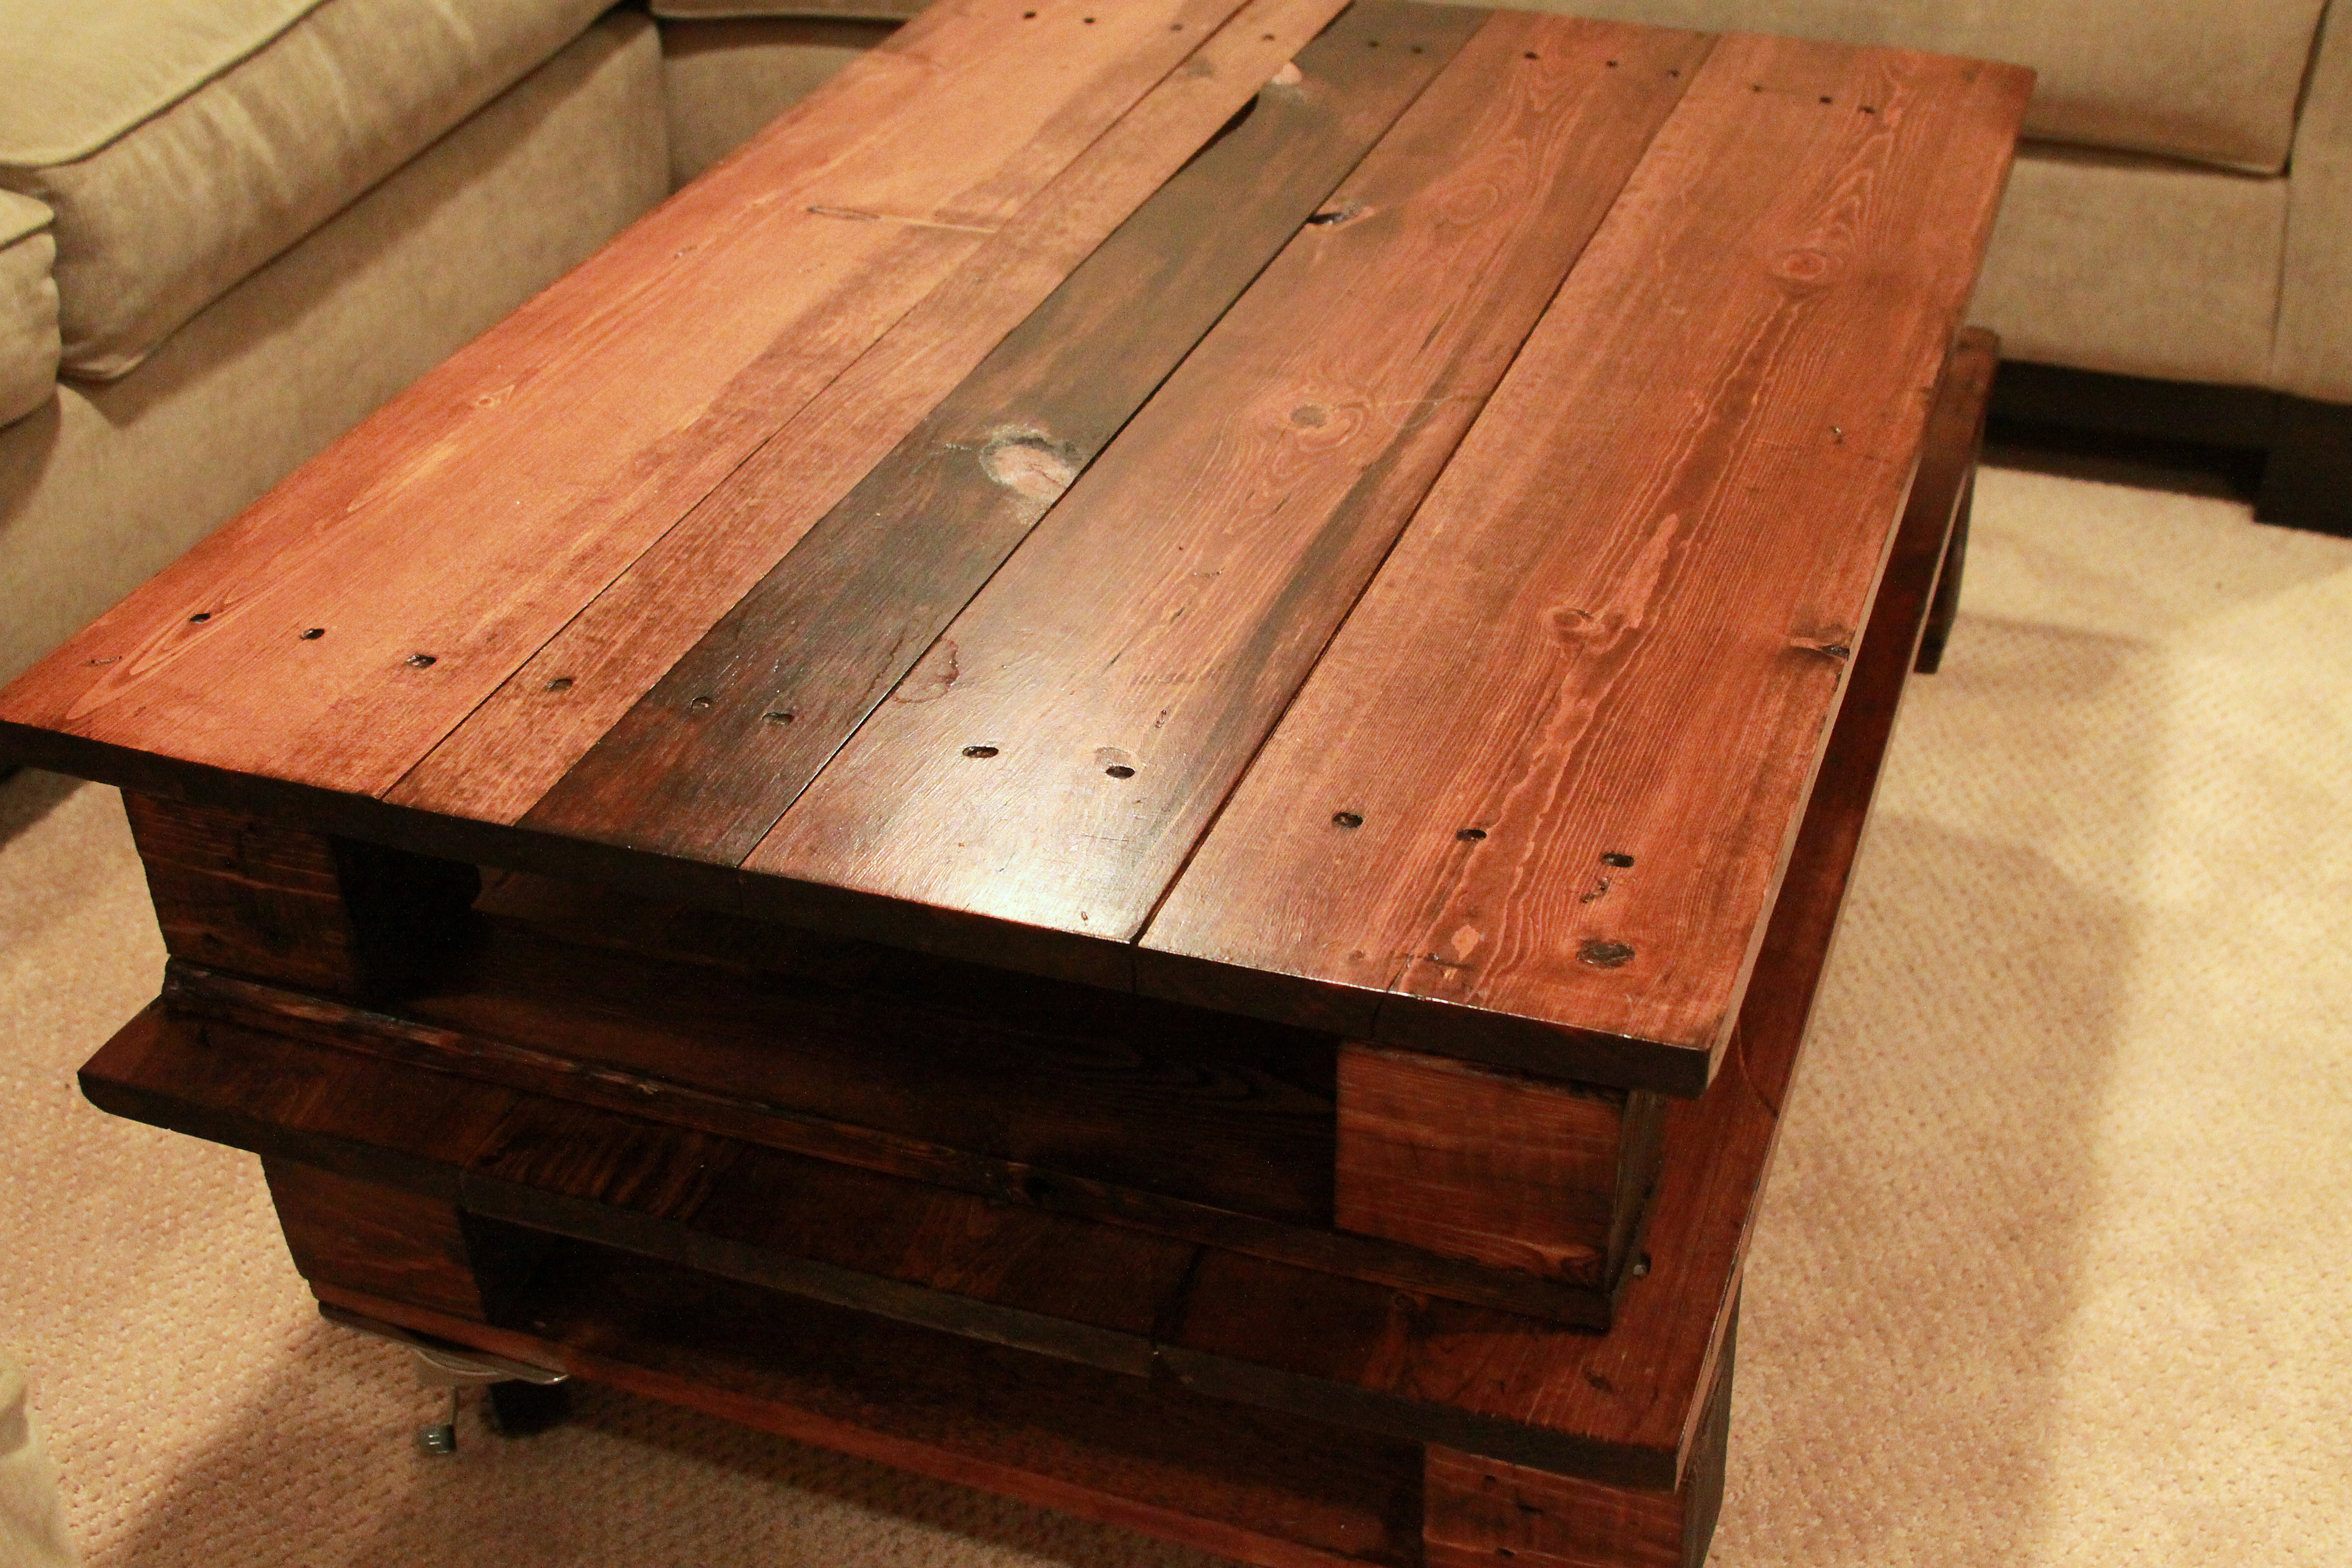 Lovely DIY Pallet Coffee Table - Espresso and CreamEspresso and Cream AZ86